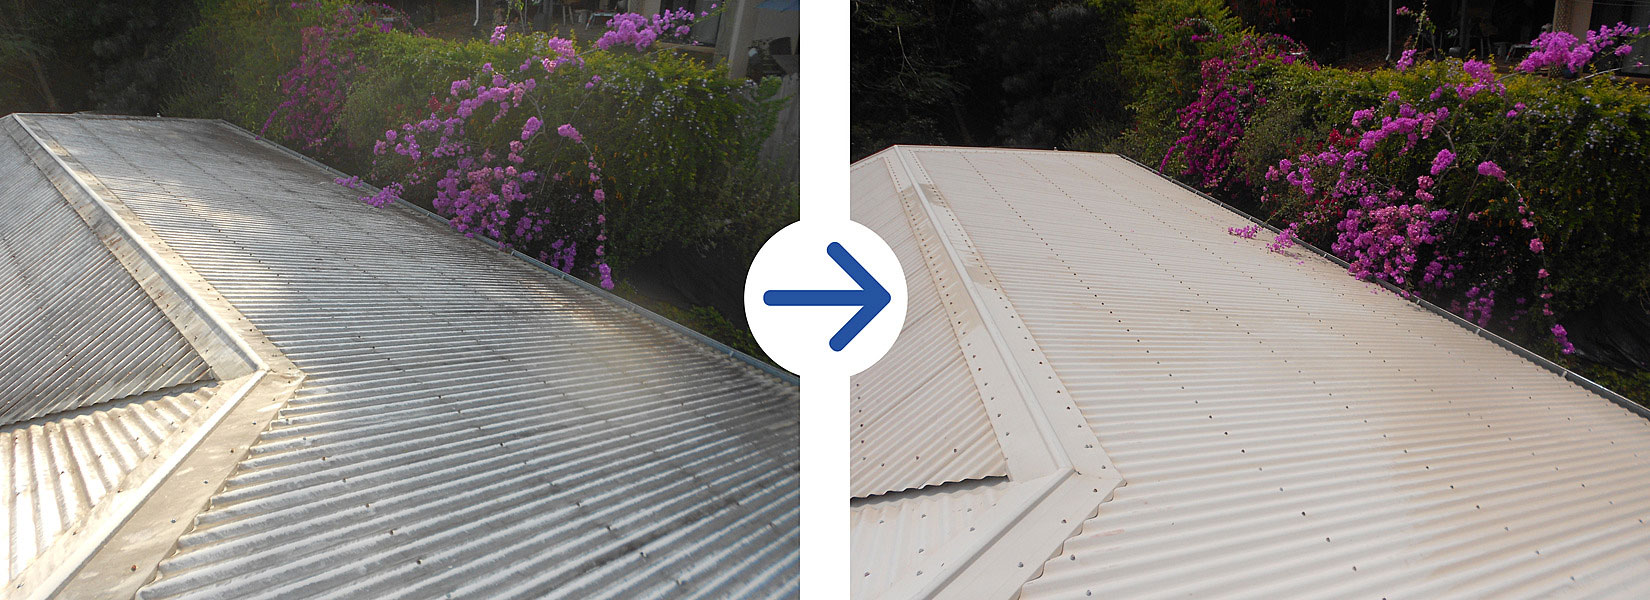 Pressure Cleaning Services 754 216 8858 Roof Commercial